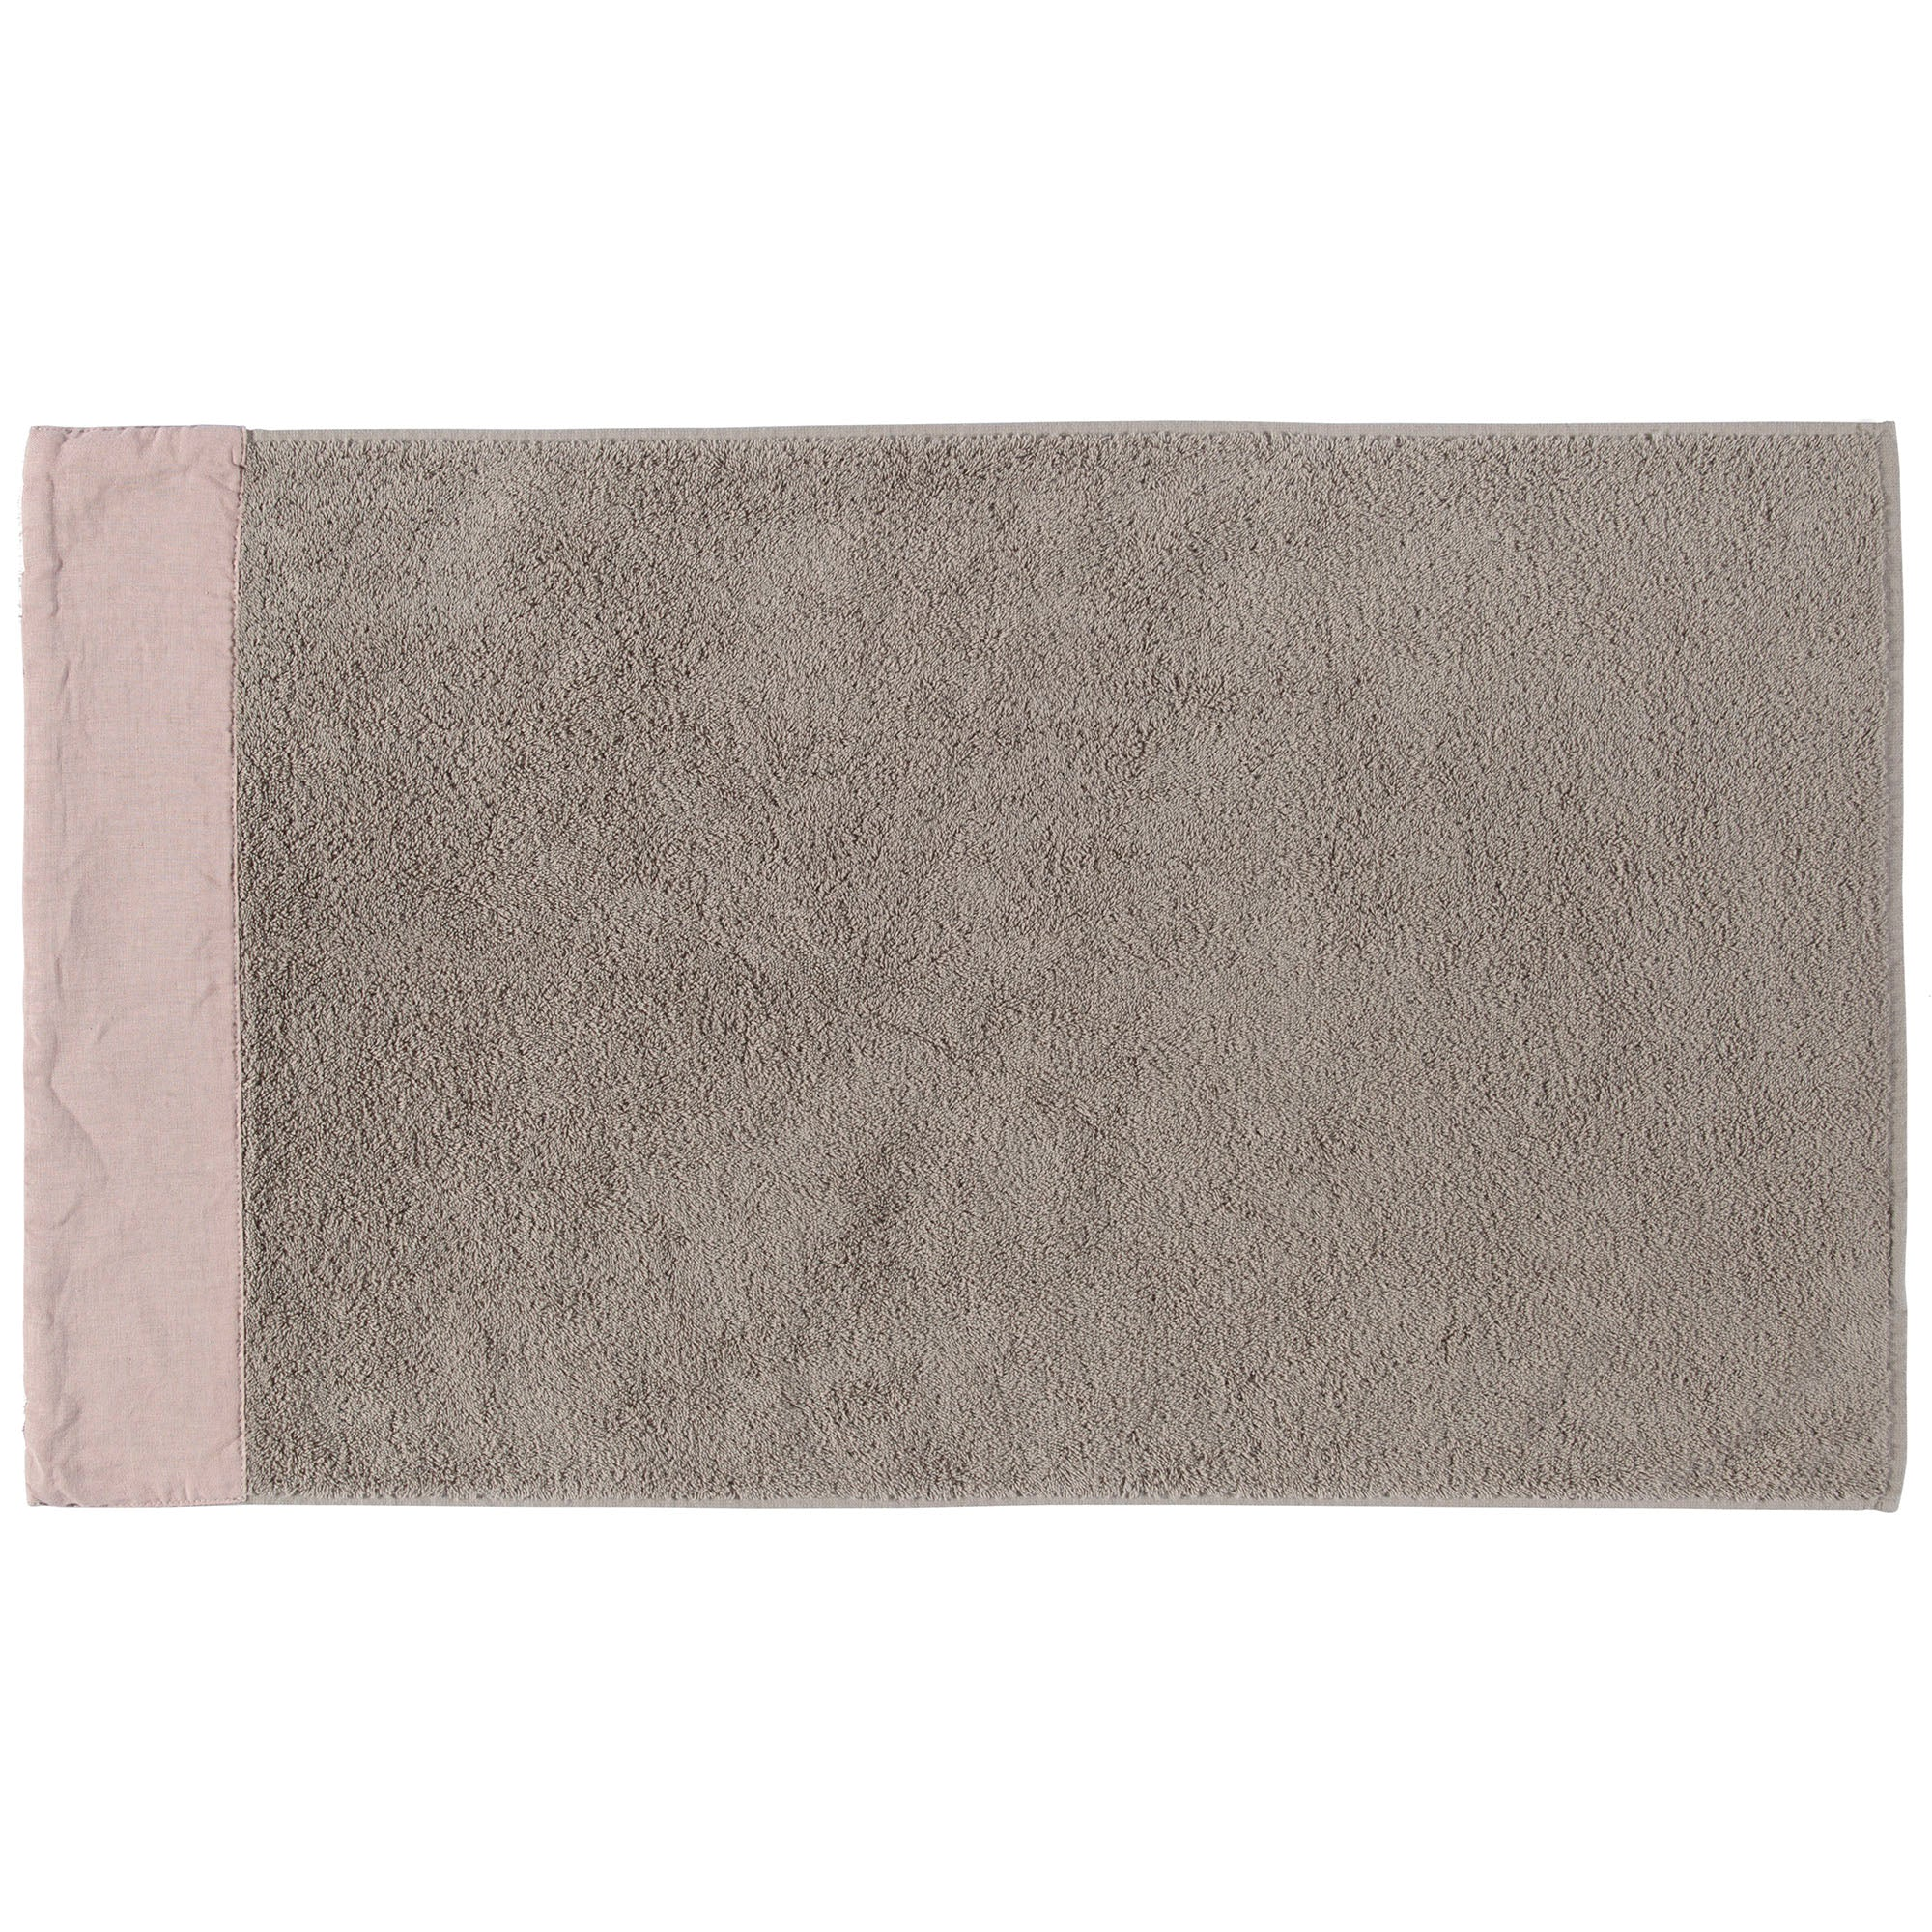 Hampton Havlu Warm Gray Quartz 50x90